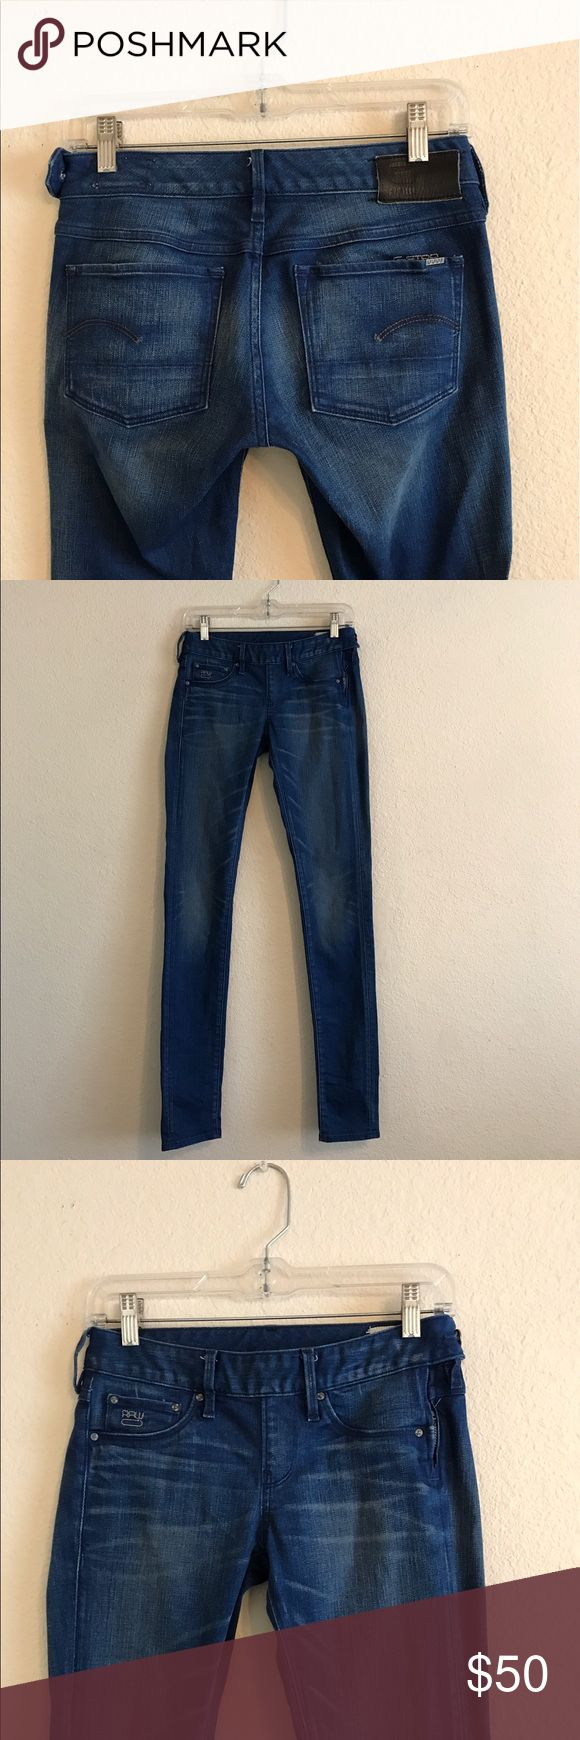 "G-STAR women's ""Super Skinny"" jeans 26 G-Star women's ""Super Skinny"" jeans.  Size: 26.  In excellent condition!  Inseam: 34"" If you have any questions feel free to ask! G-Star Jeans Skinny"